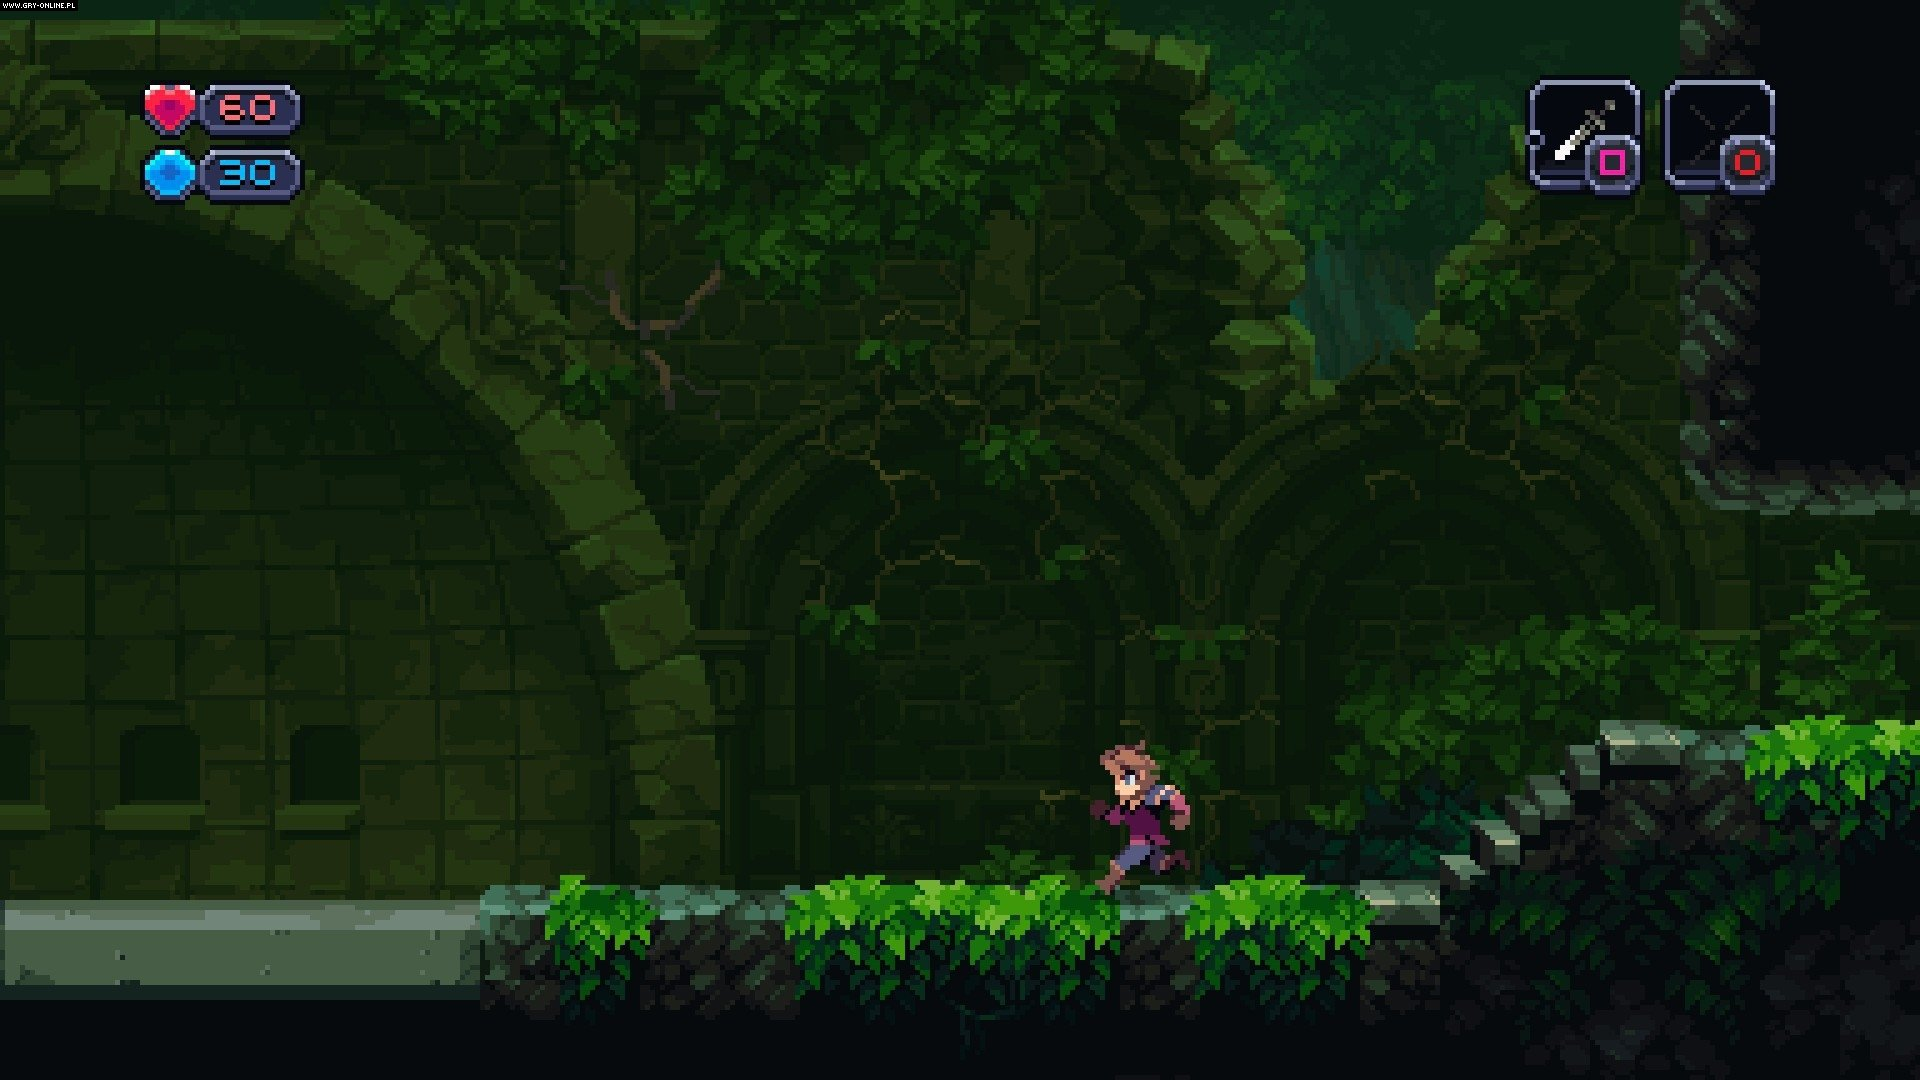 Chasm PC, PSV, PS4 Gry Screen 4/14, Bit Kid